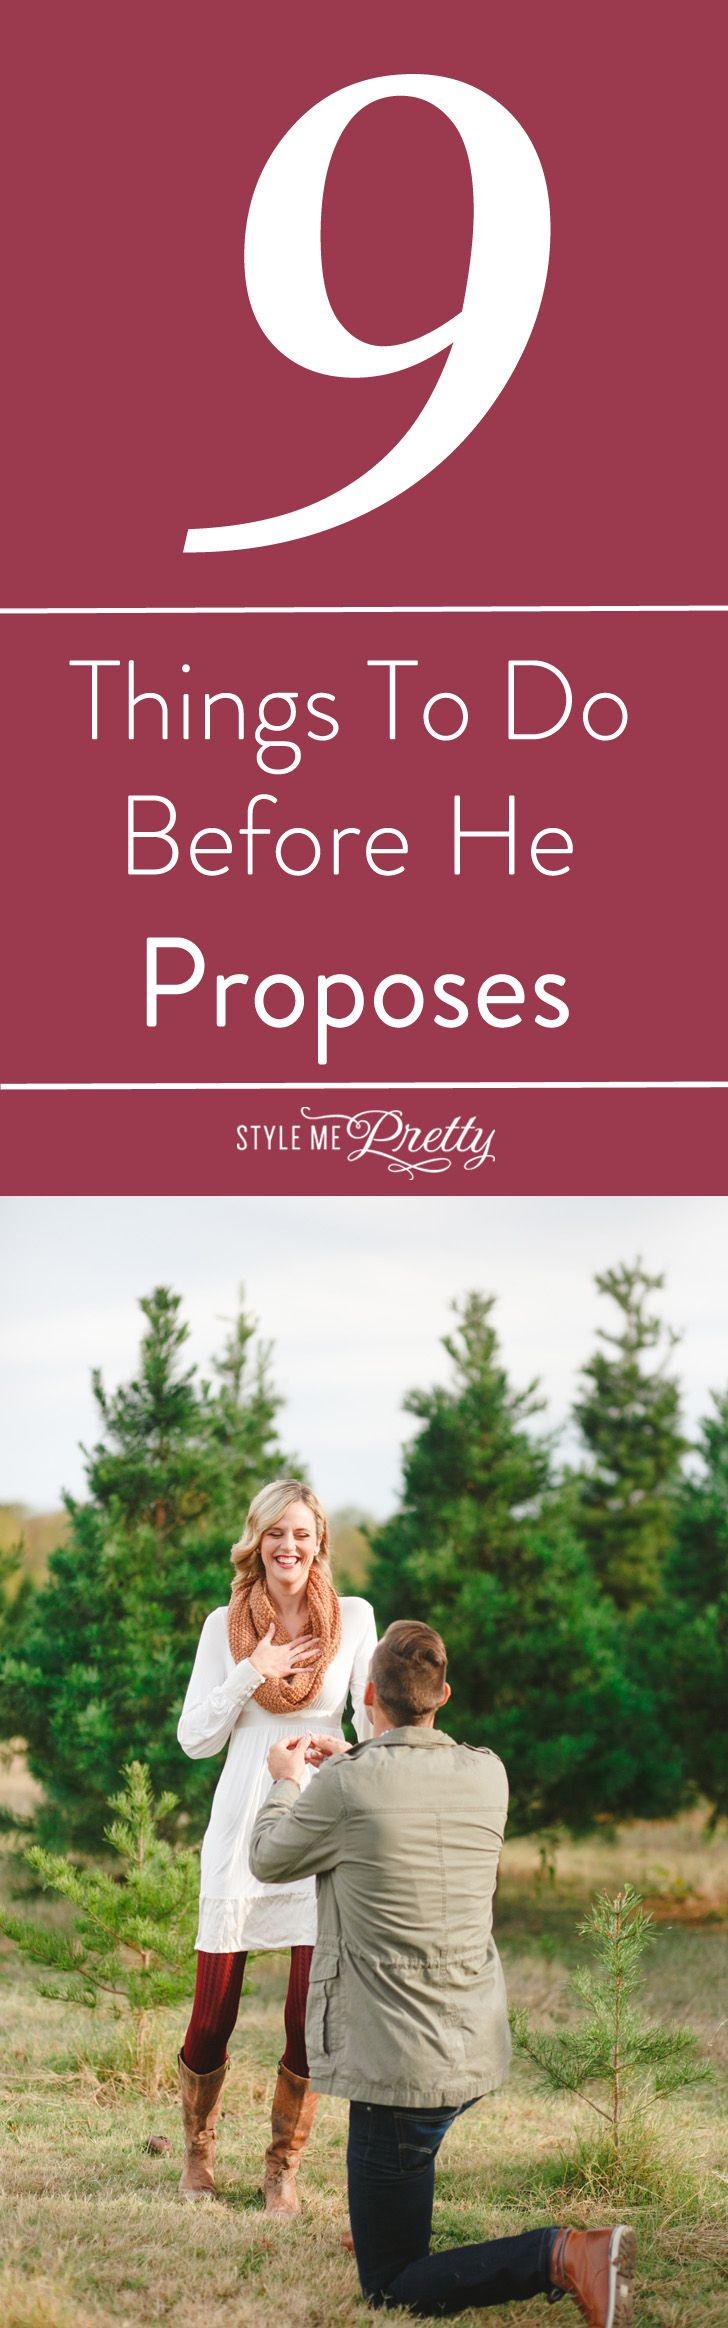 Is he going to pop the question? Make sure you do these things first! http://www.stylemepretty.com/2015/12/03/might-be-getting-engaged-heres-some-to-dos/